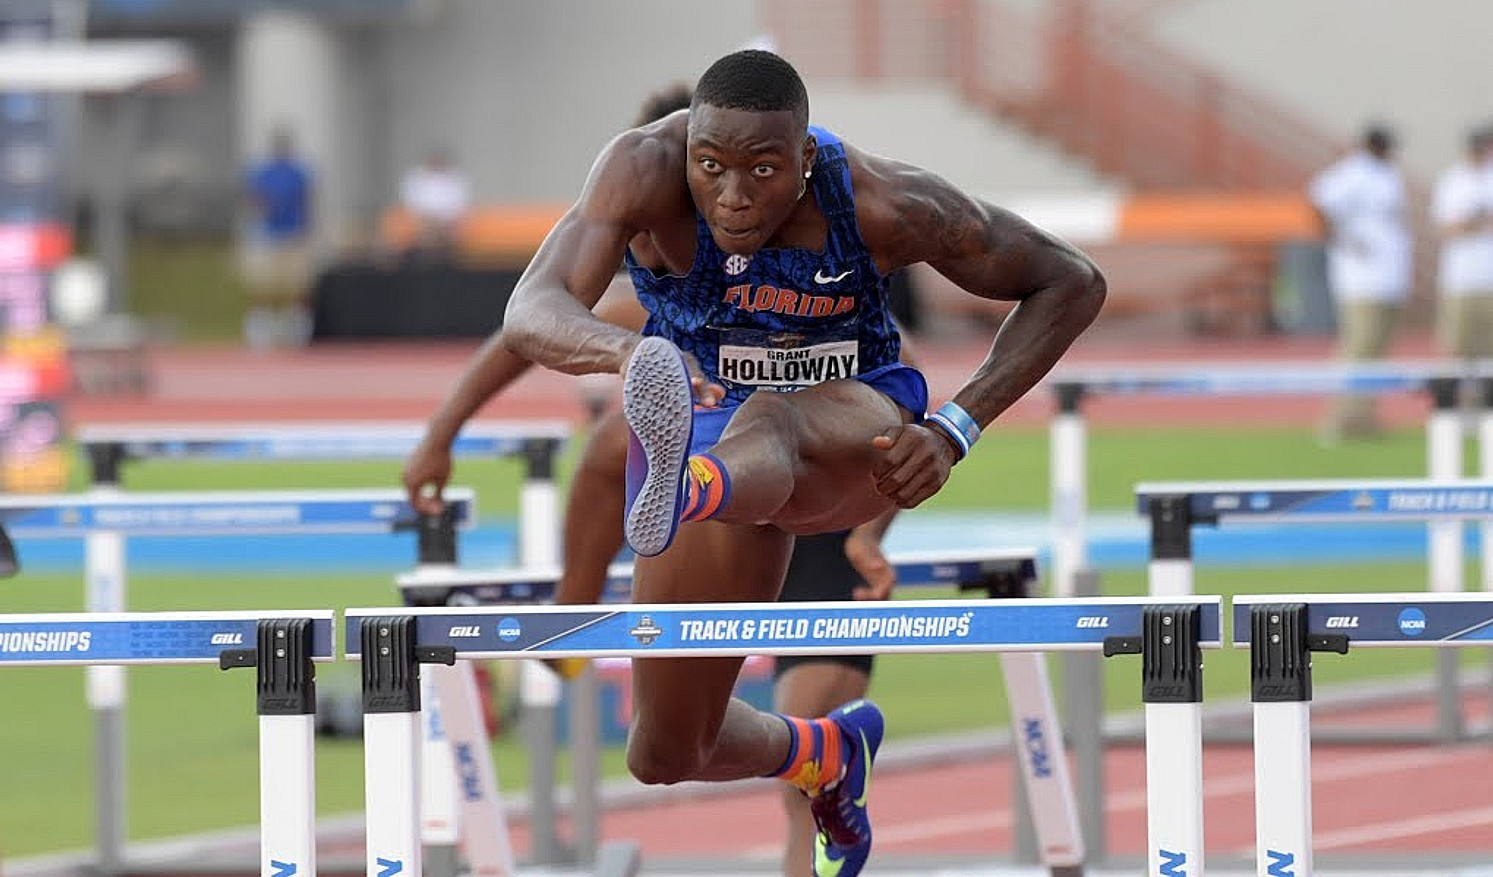 Grant Holloway of USA in the hurdles